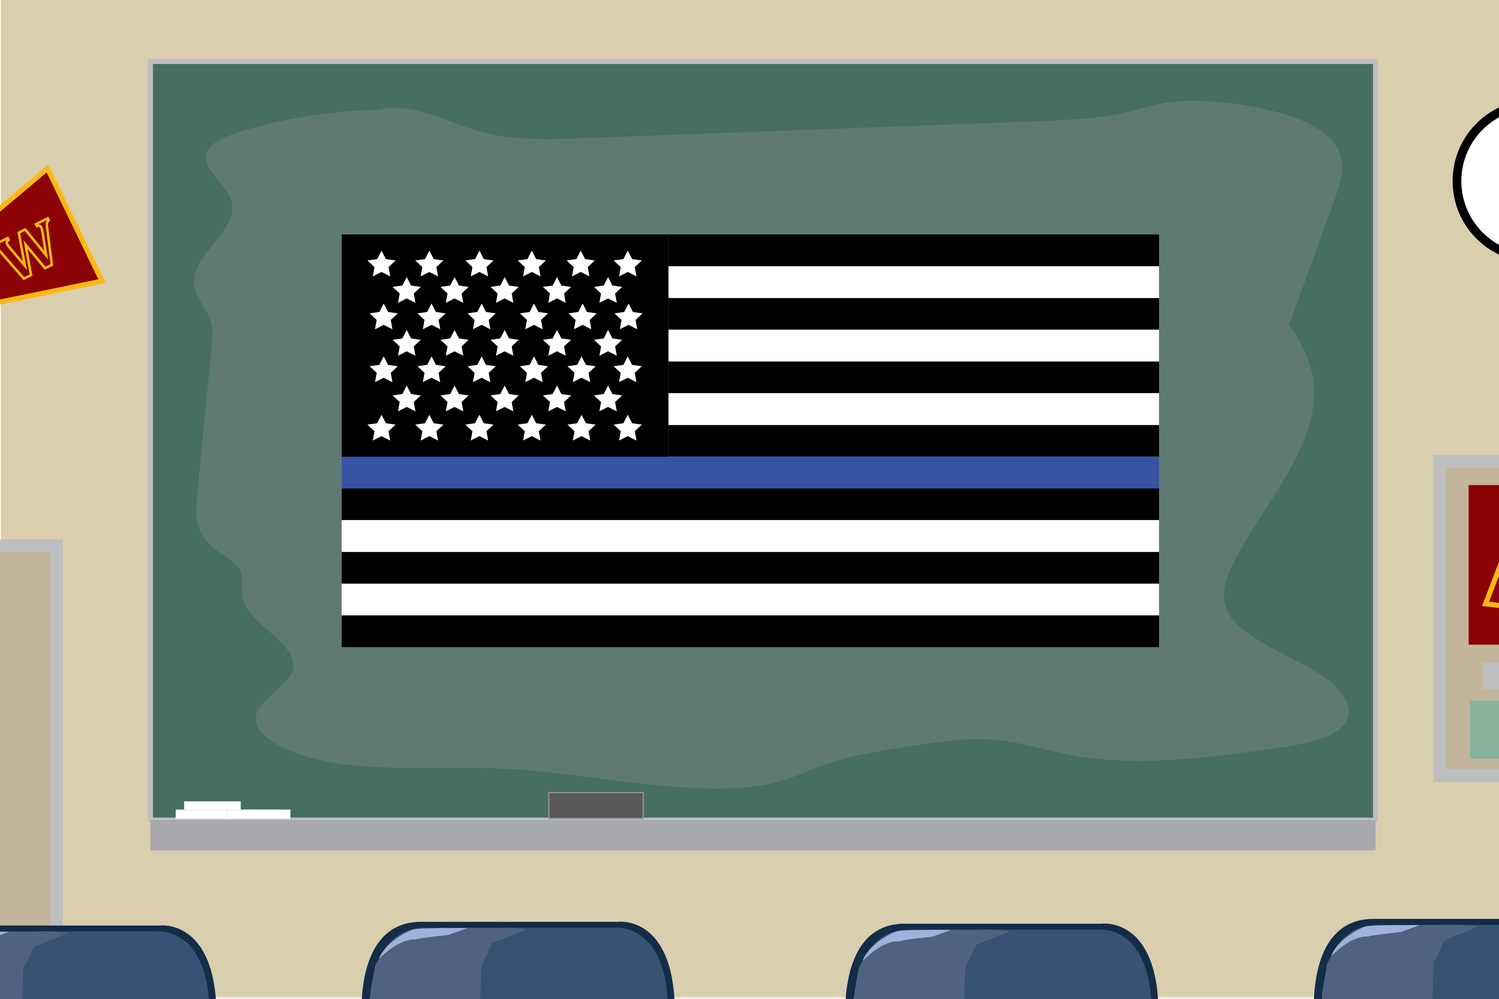 An illustration of the highly-contested Blue Lives Matter flag.